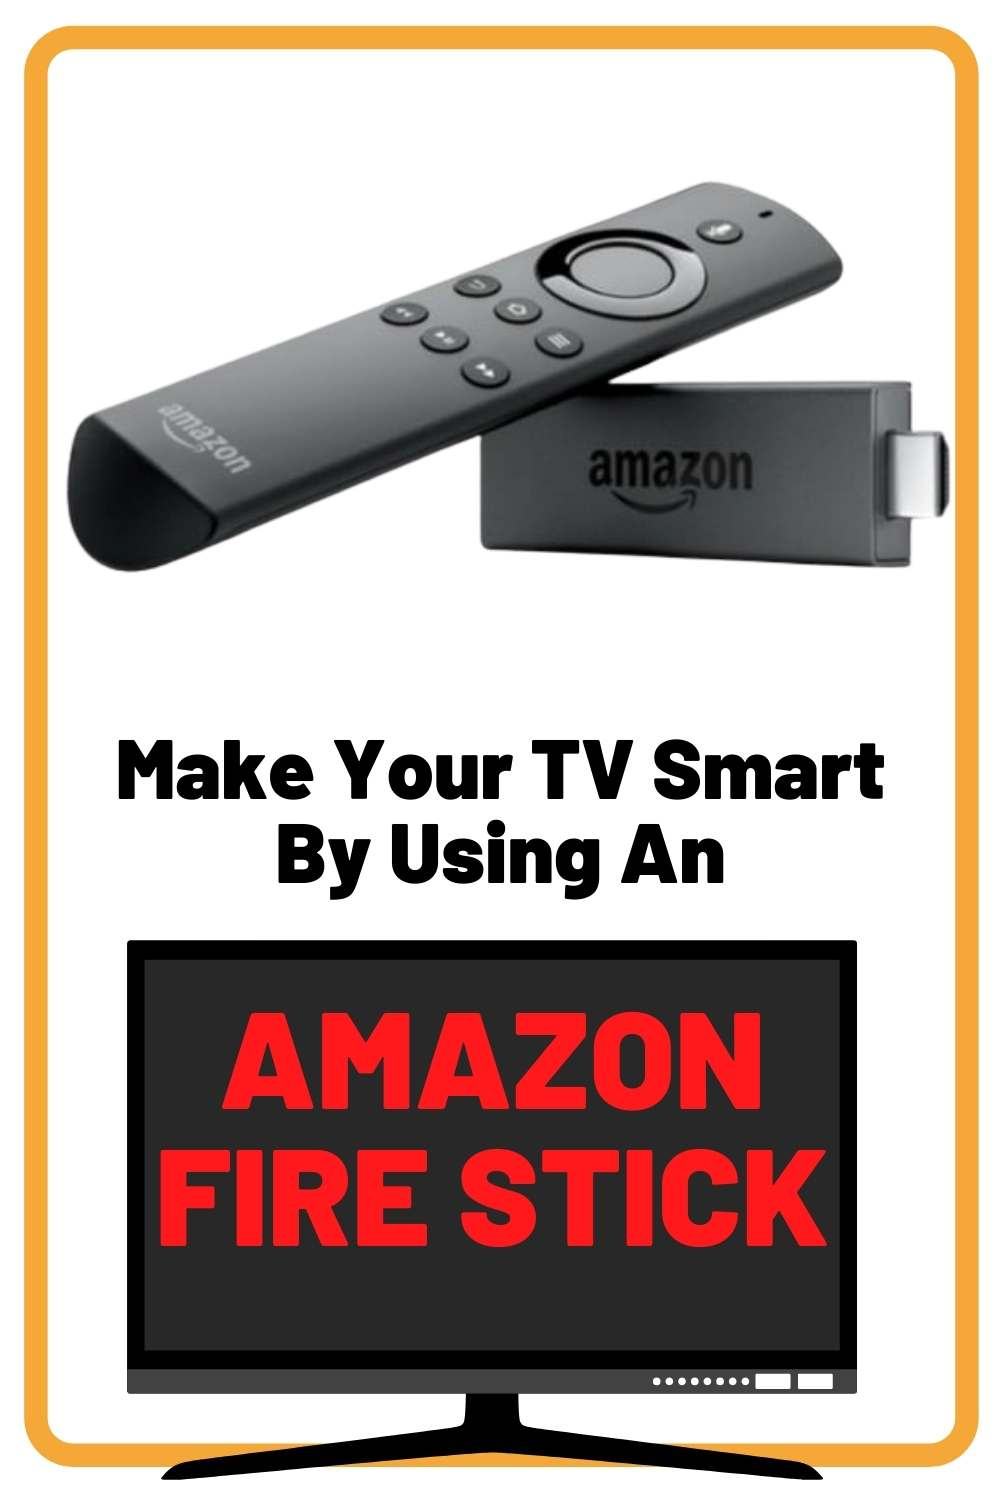 Amazon Fire Stick Review